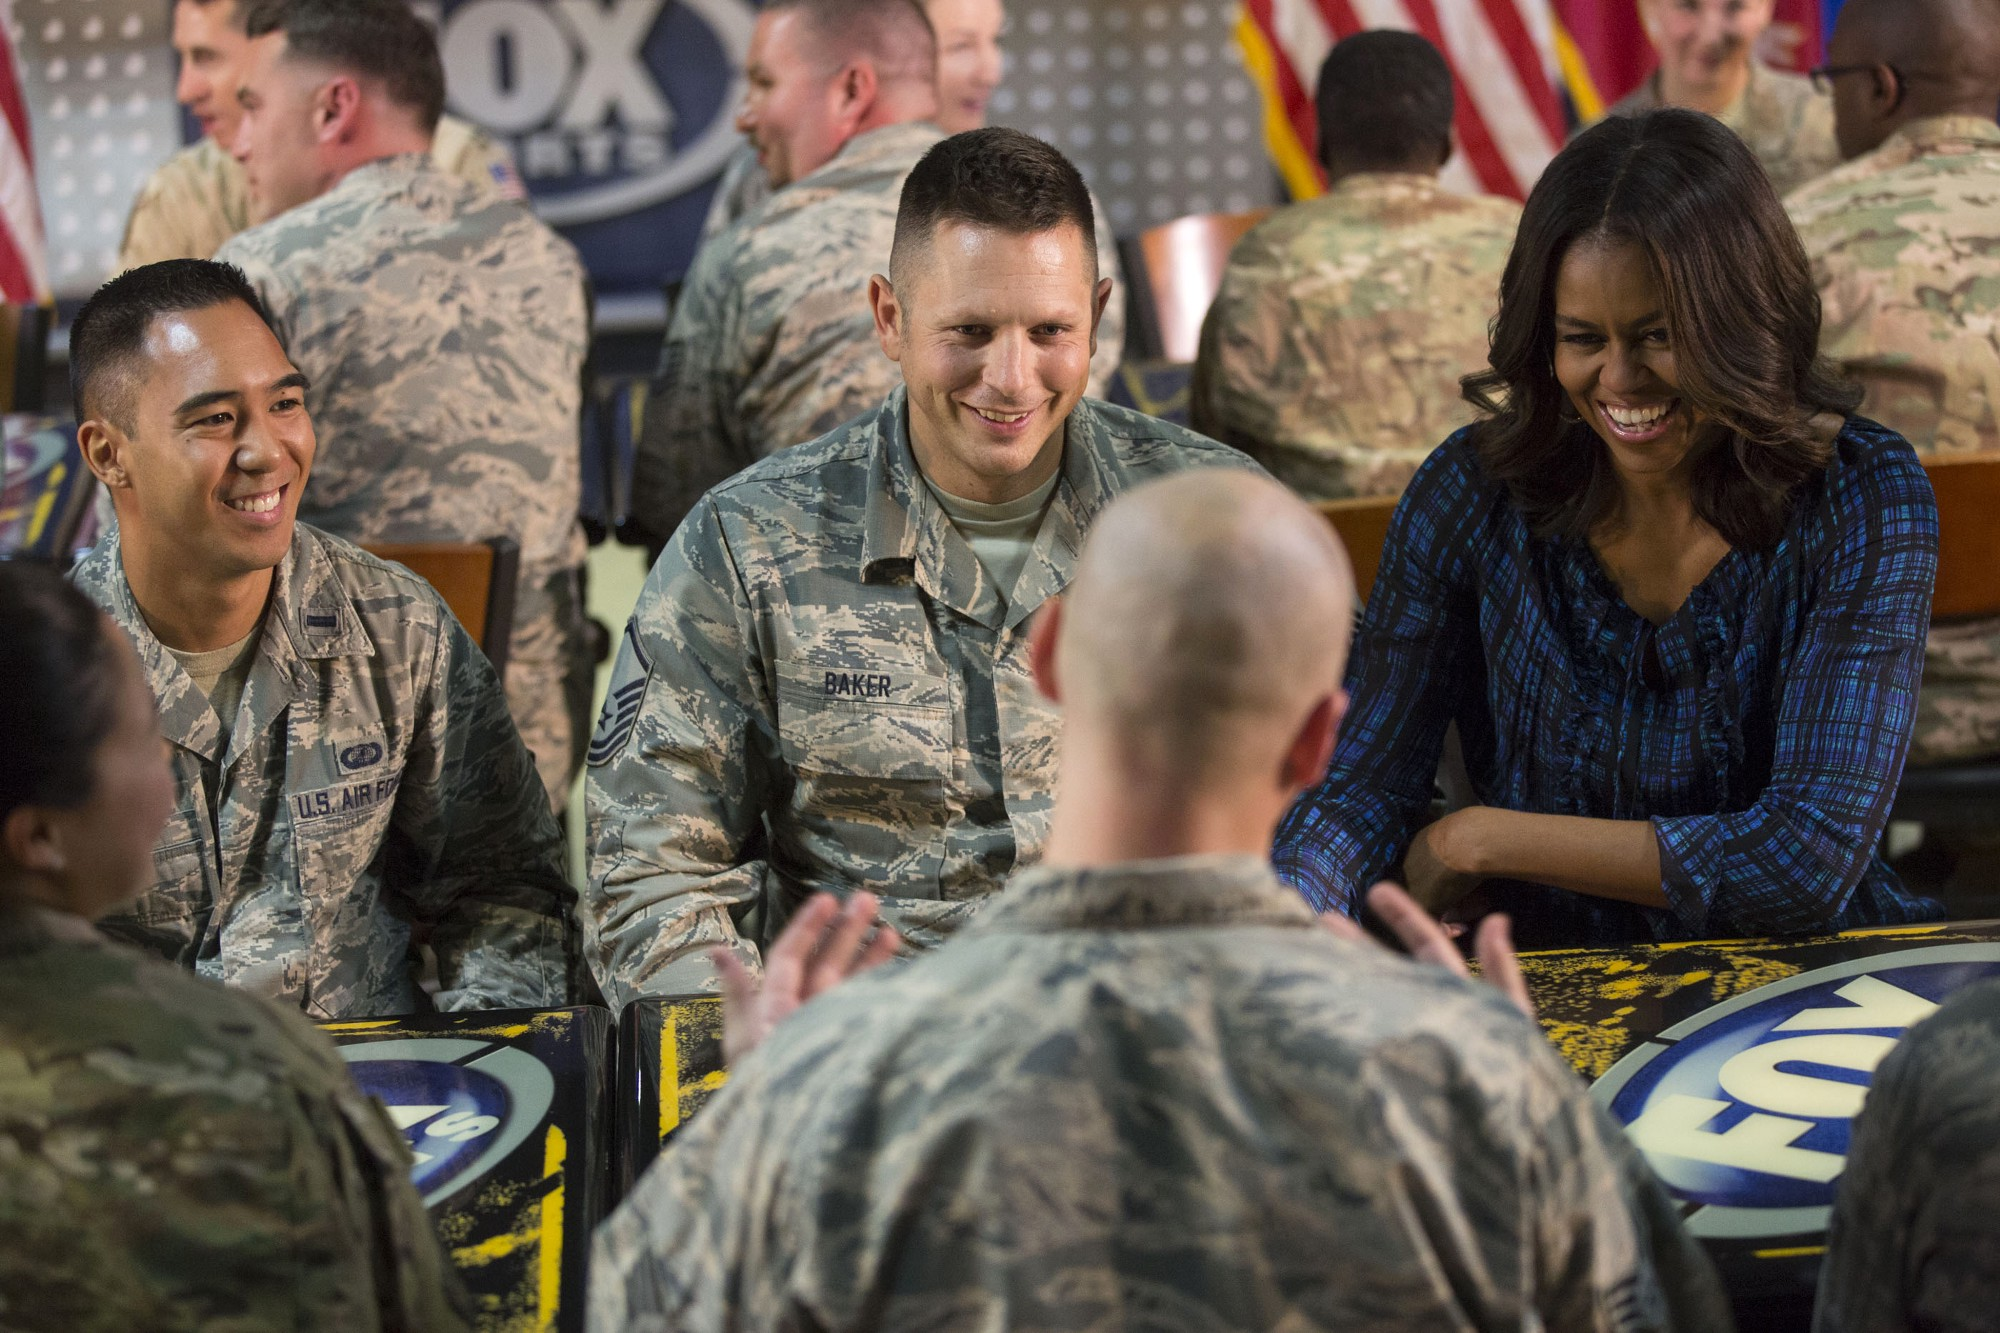 First Lady Michelle Obama participate in a meet and greet with service members, in support of the Joining Forces initiative, at Al Udeid Air Base in Qatar, Nov. 3, 2015. (Official White House Photo by Amanda Lucidon)